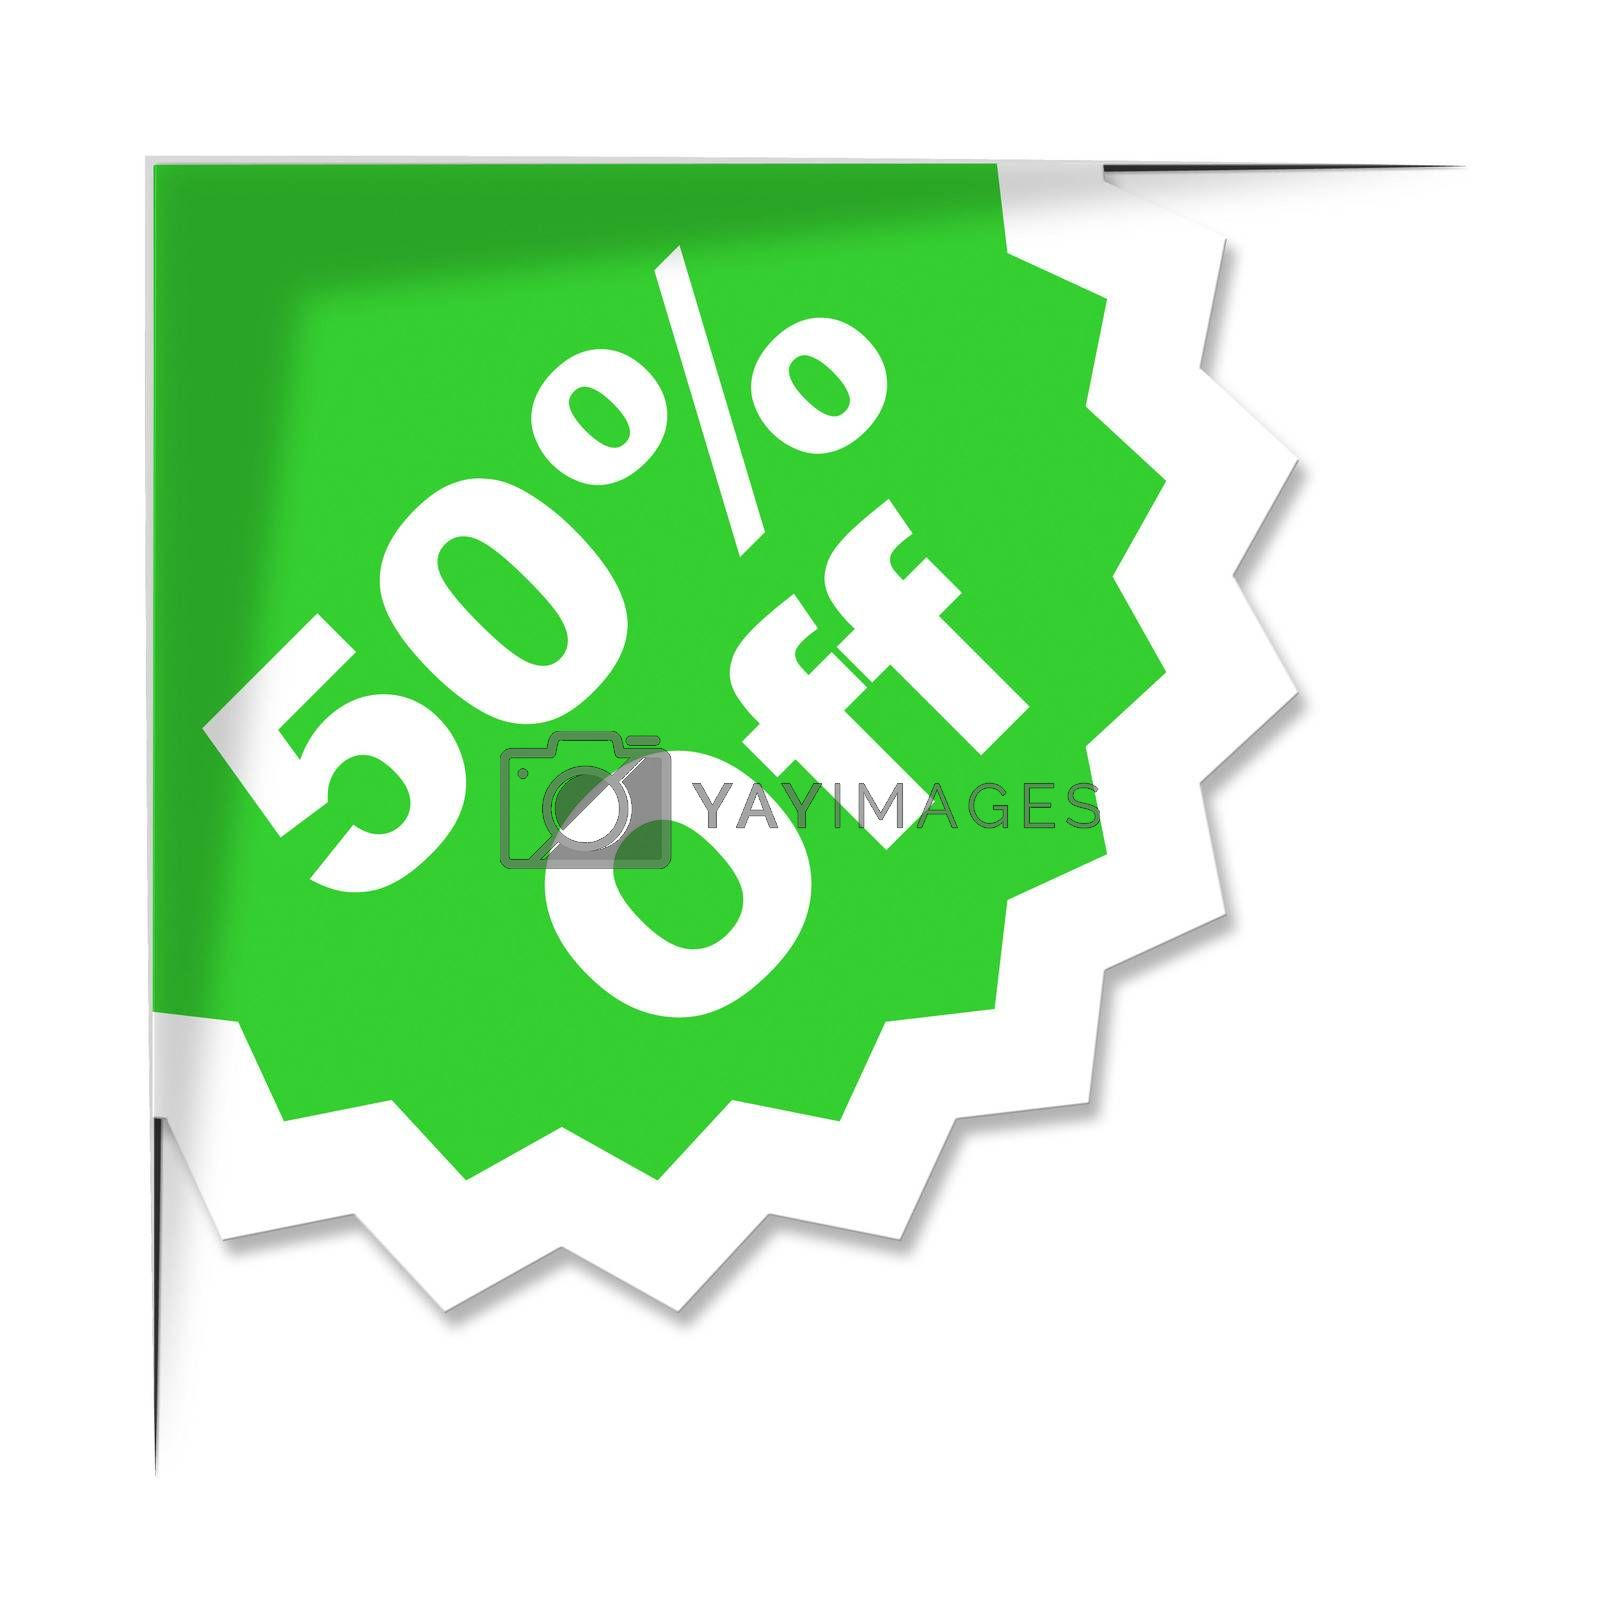 Fifty Percent Off Shows Retail Discounts And Clearance by stuartmiles